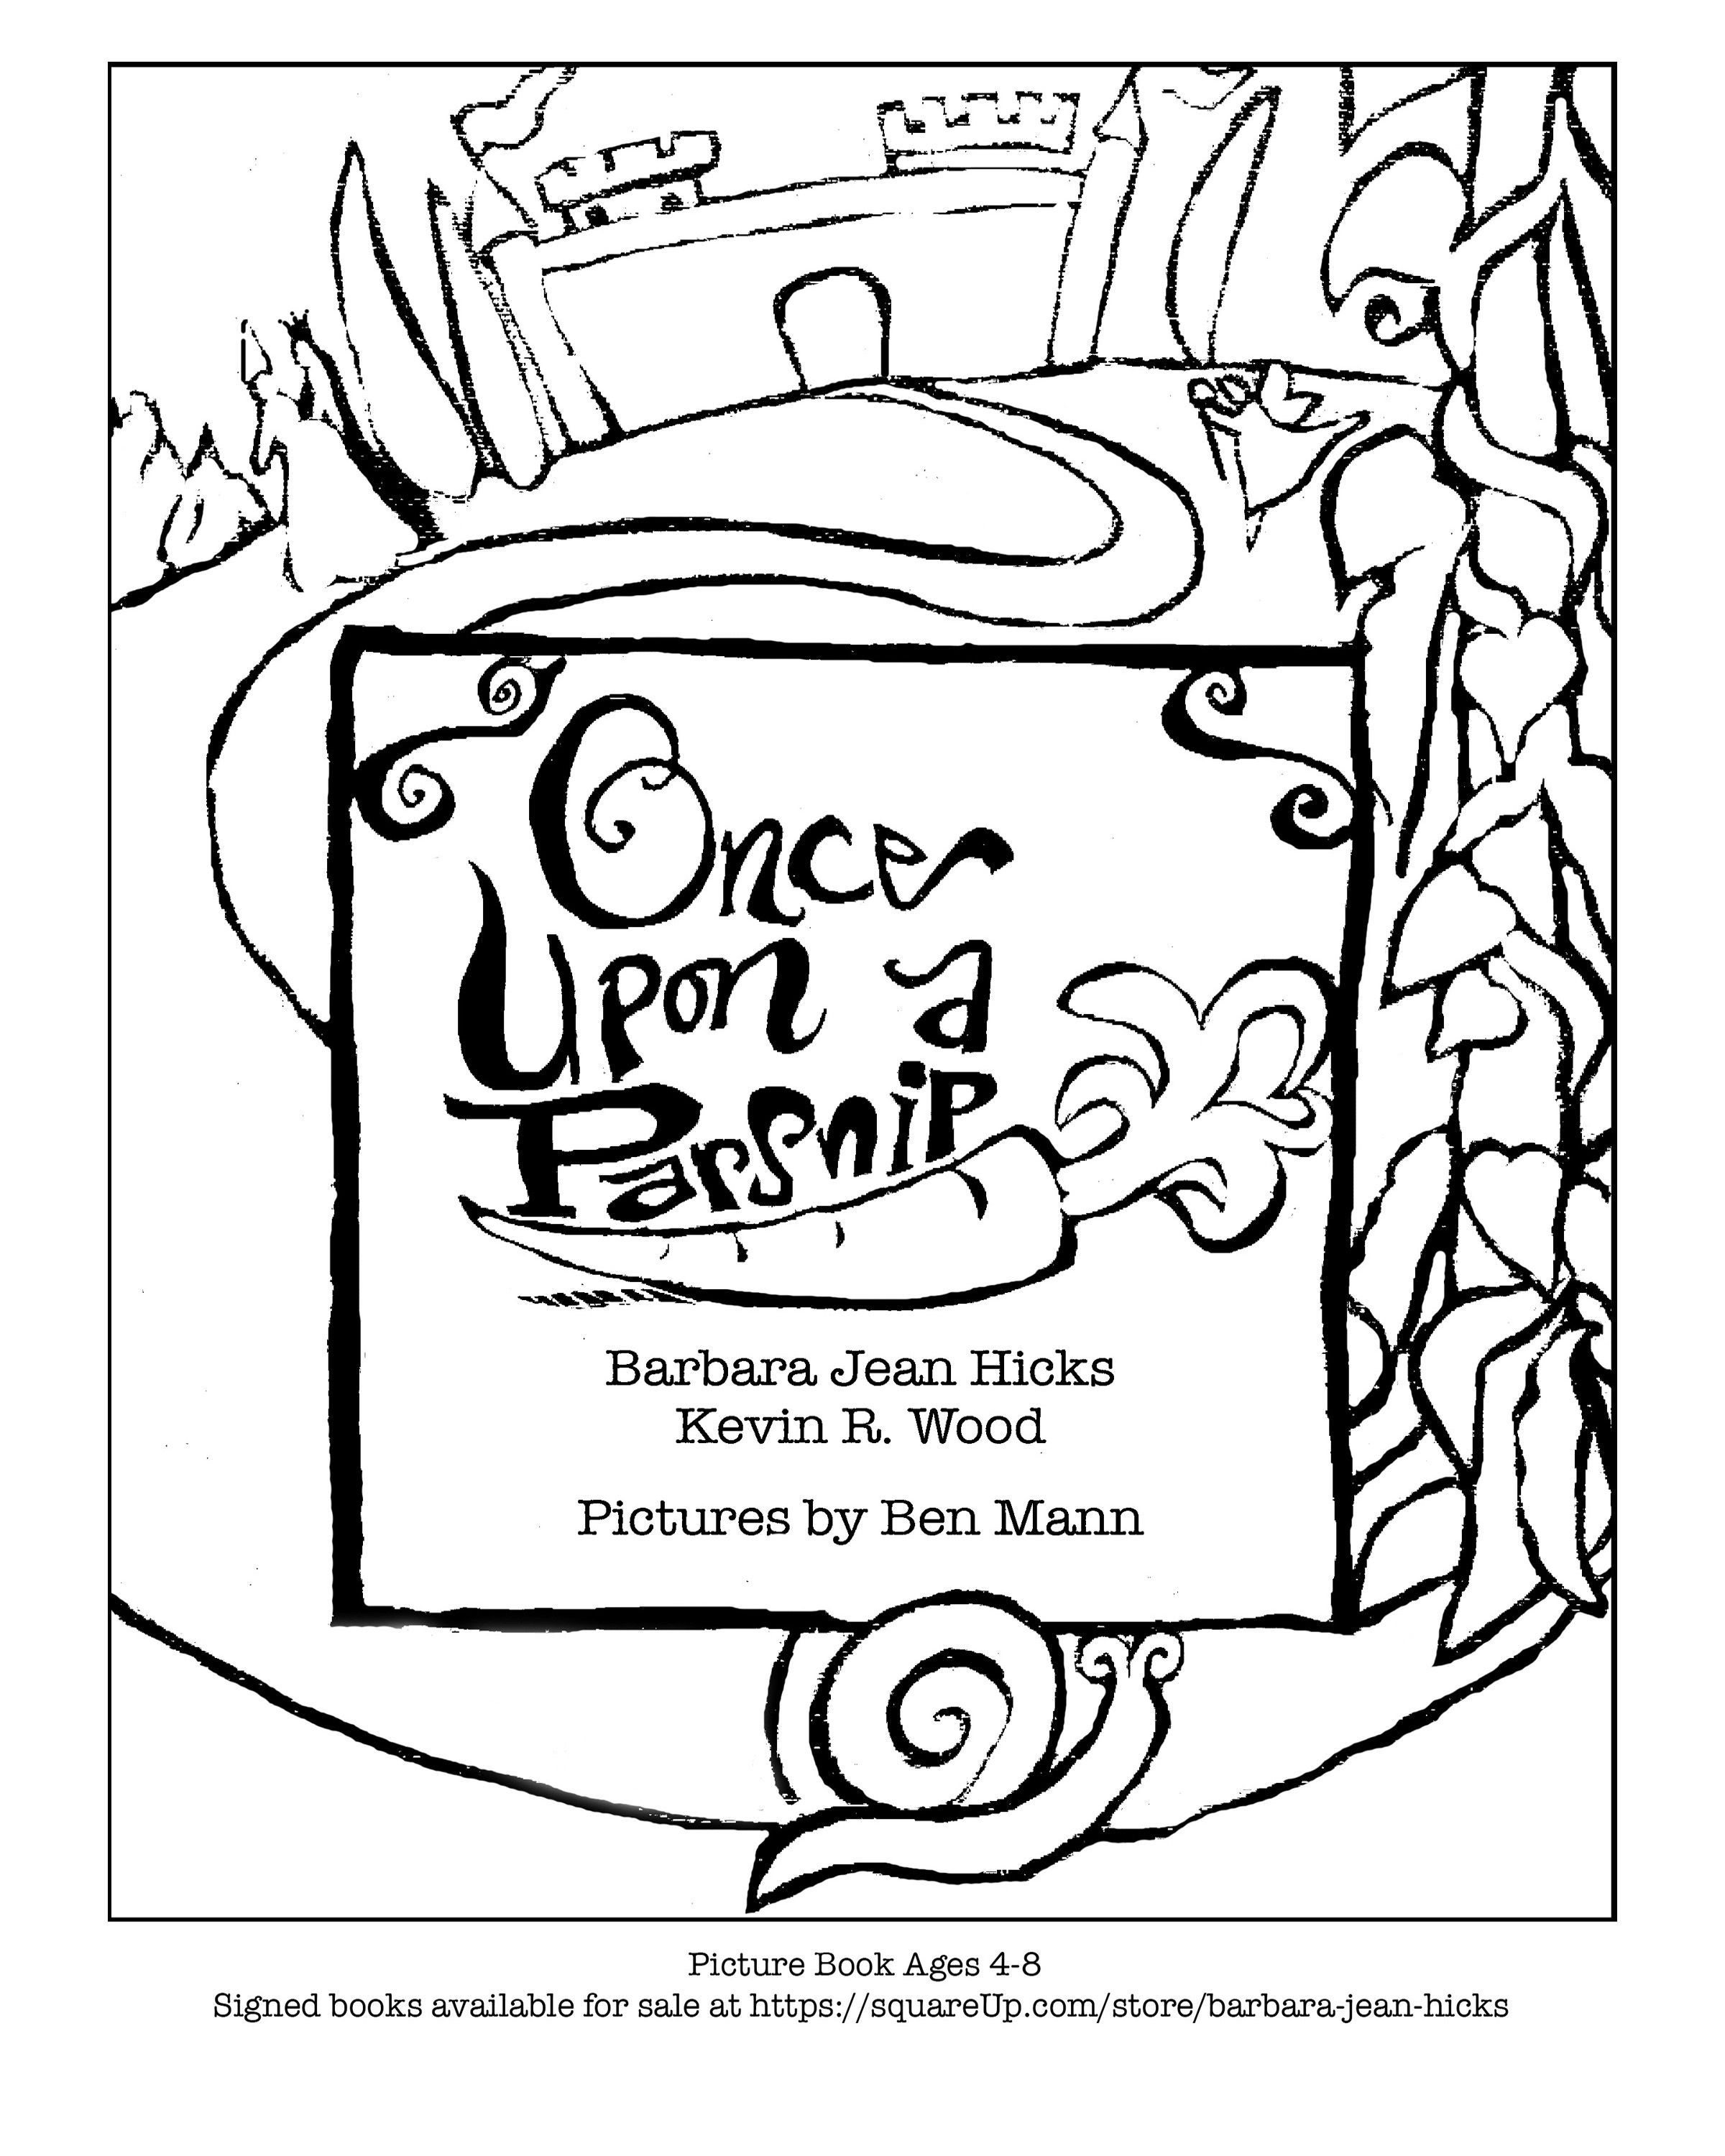 The coloring book project 2nd edition - Here S A Coloring Page Created From Ben S Book Cover Image And A Second Coloring Page Of Ms Penelope Parsnip Signed With Love